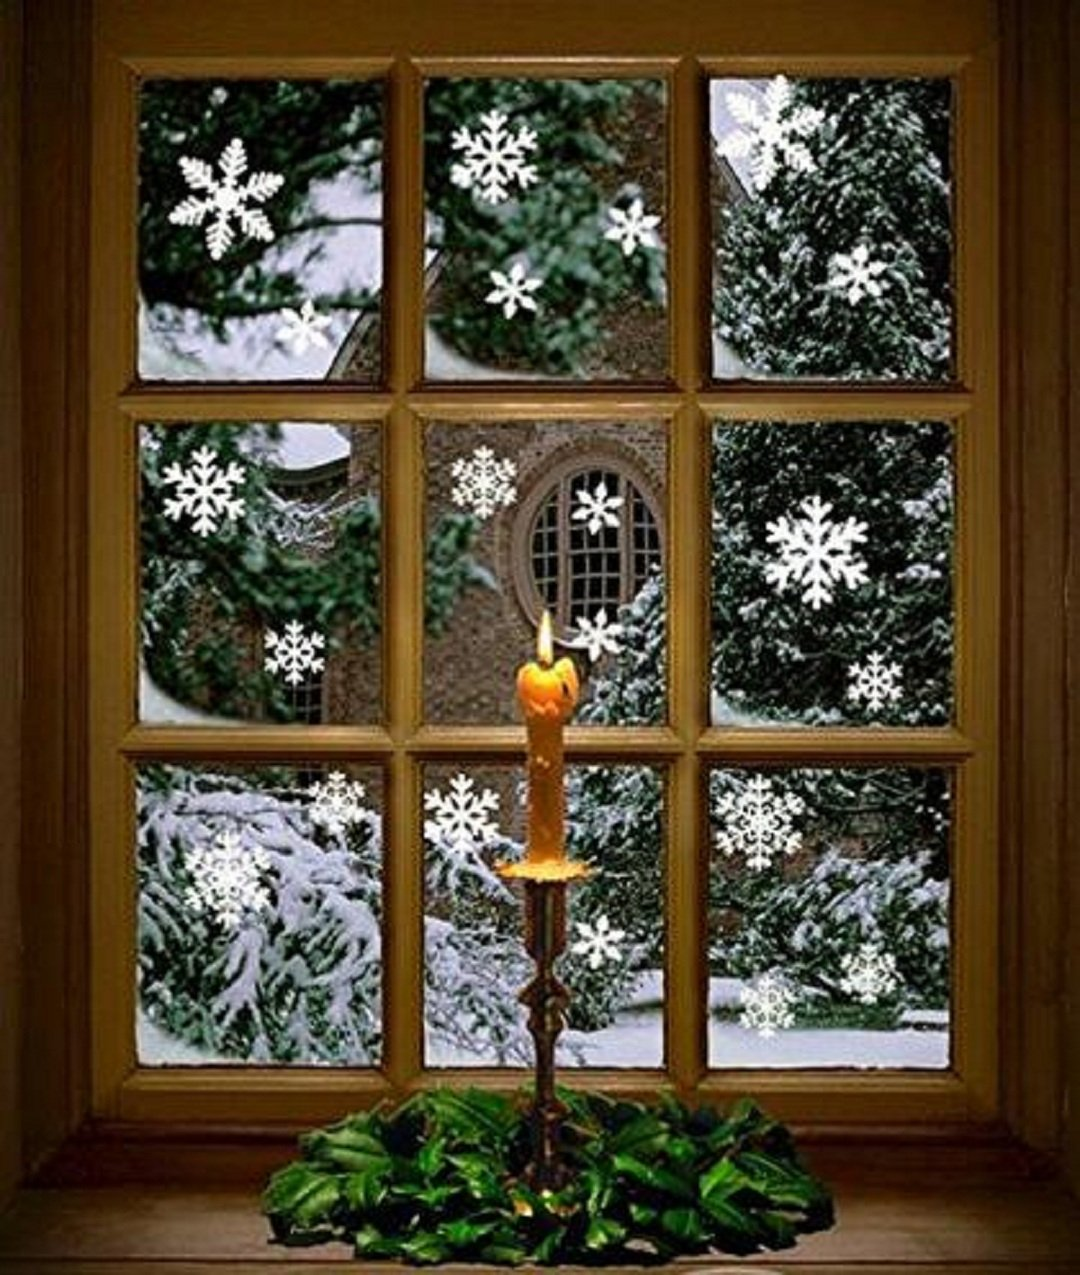 Wendin 81 pcs White Snowflakes Window Clings Decal Stickers Christmas Winter Wonderland Decorations Ornaments Party Supplies